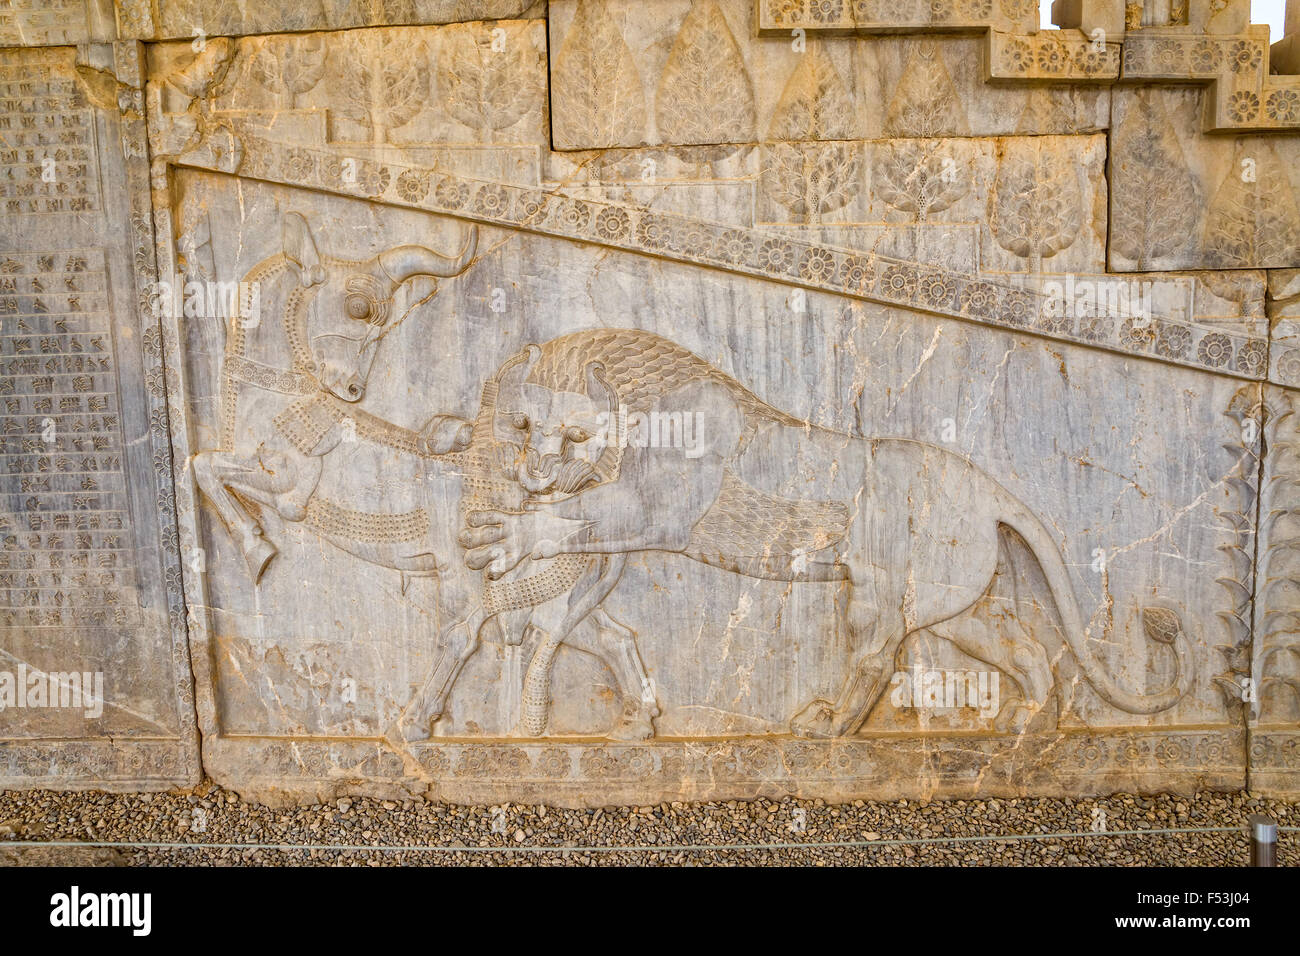 Page 2 Head Persepolis Iran High Resolution Stock Photography And Images Alamy